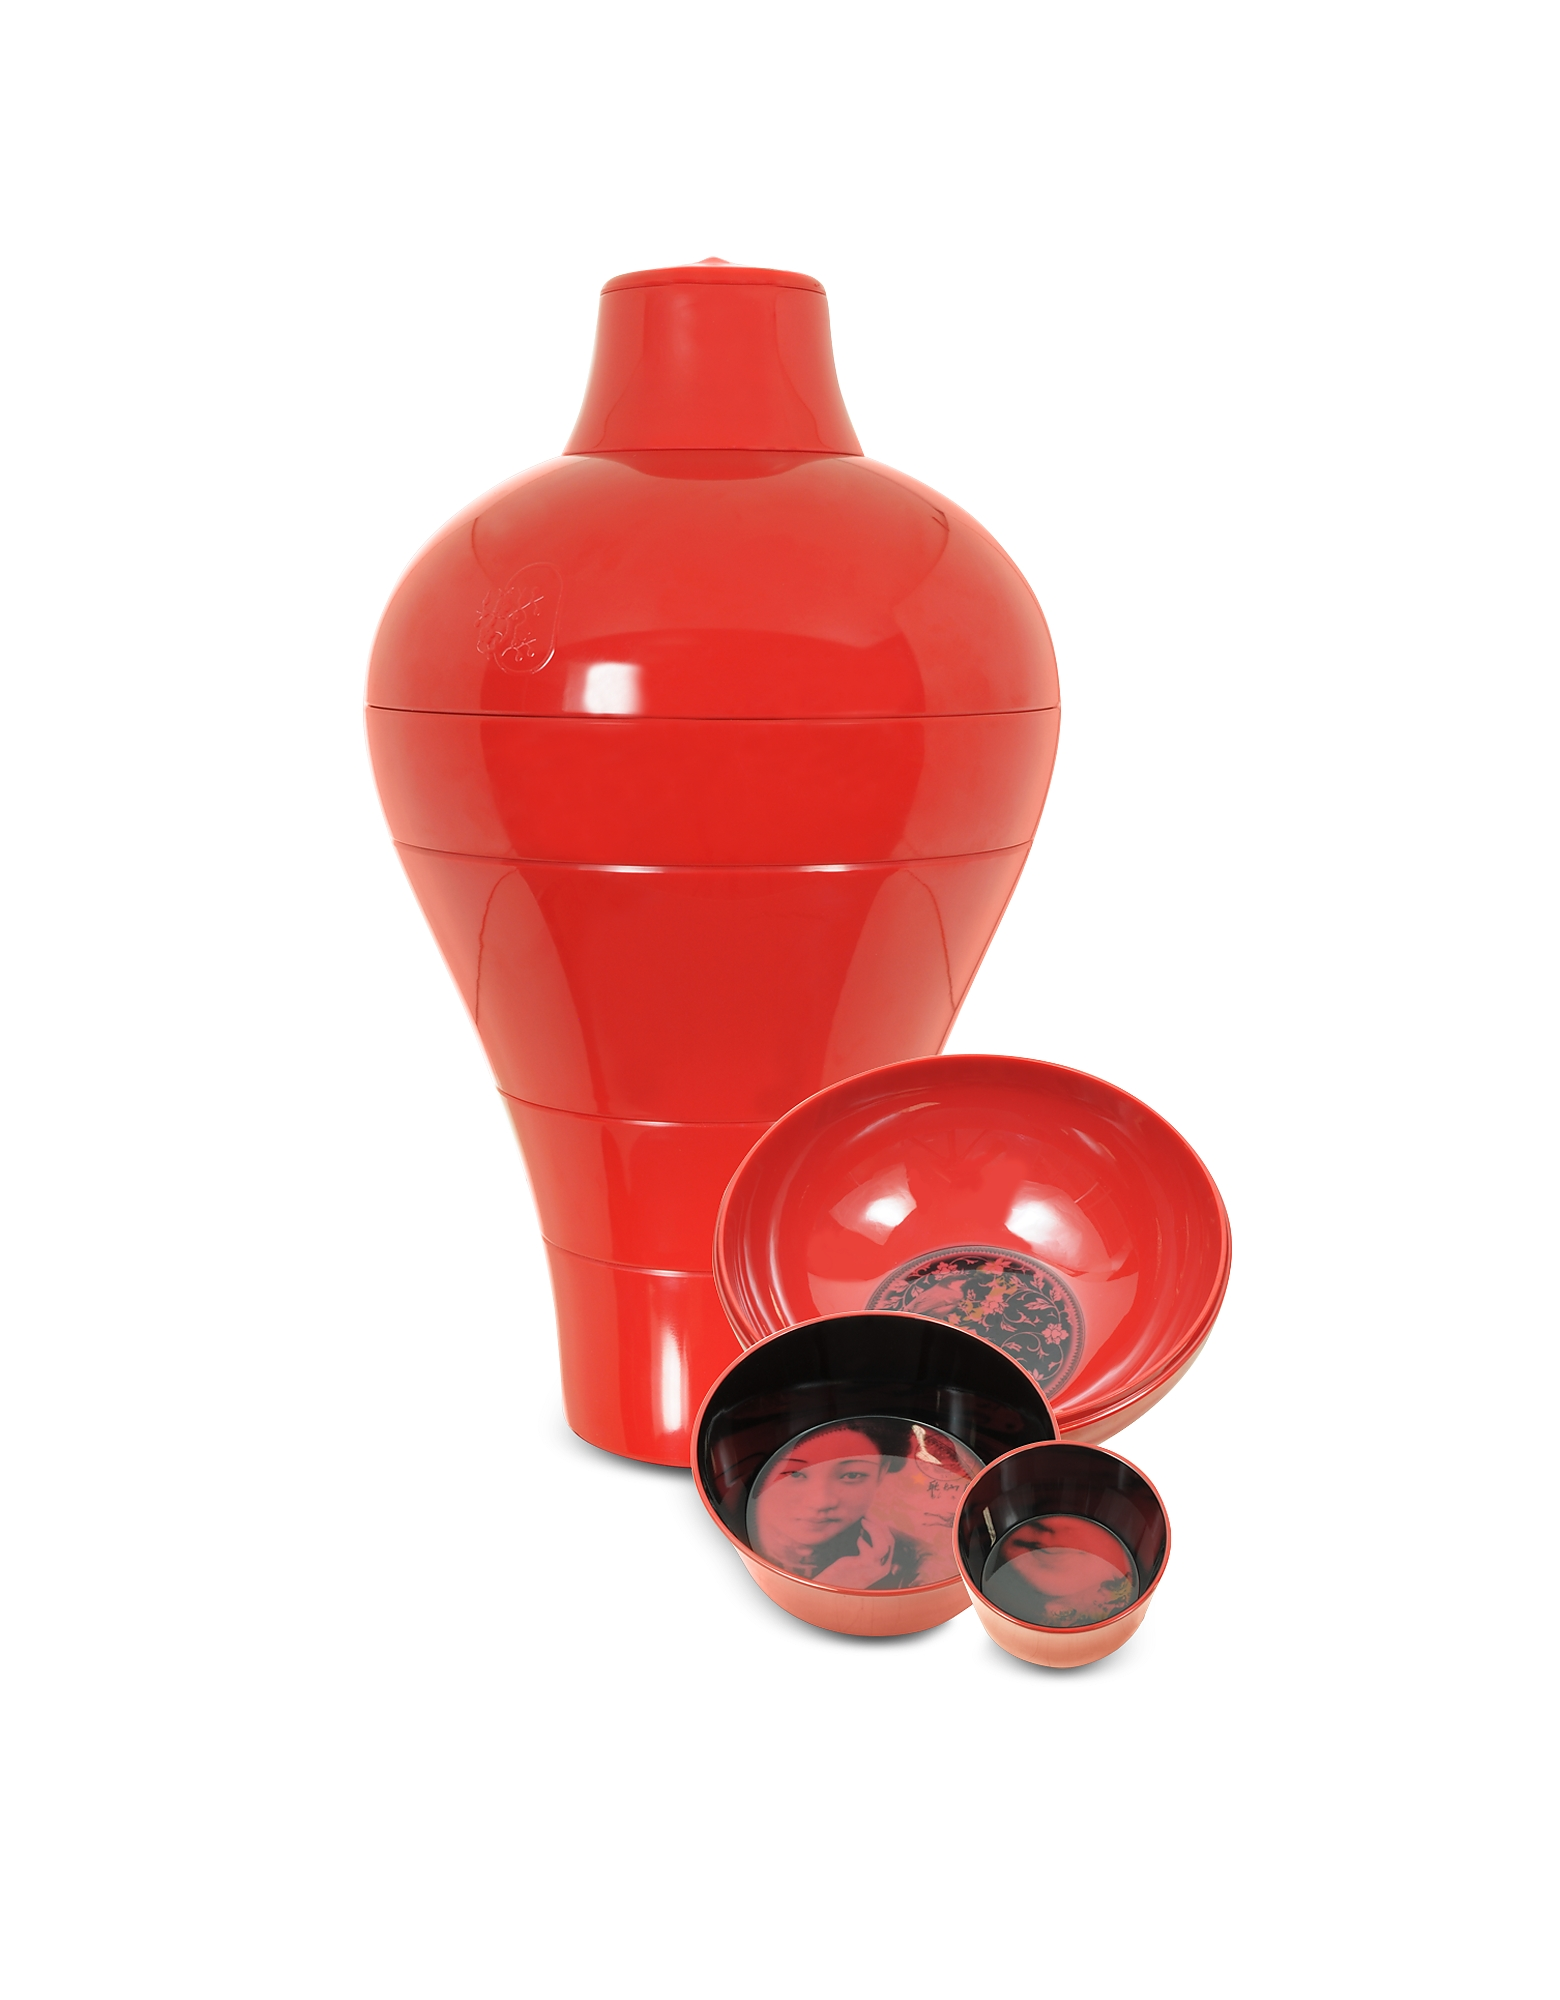 Ibride Designer Decor  Lighting Red Ming Vase  Stackable Bowls